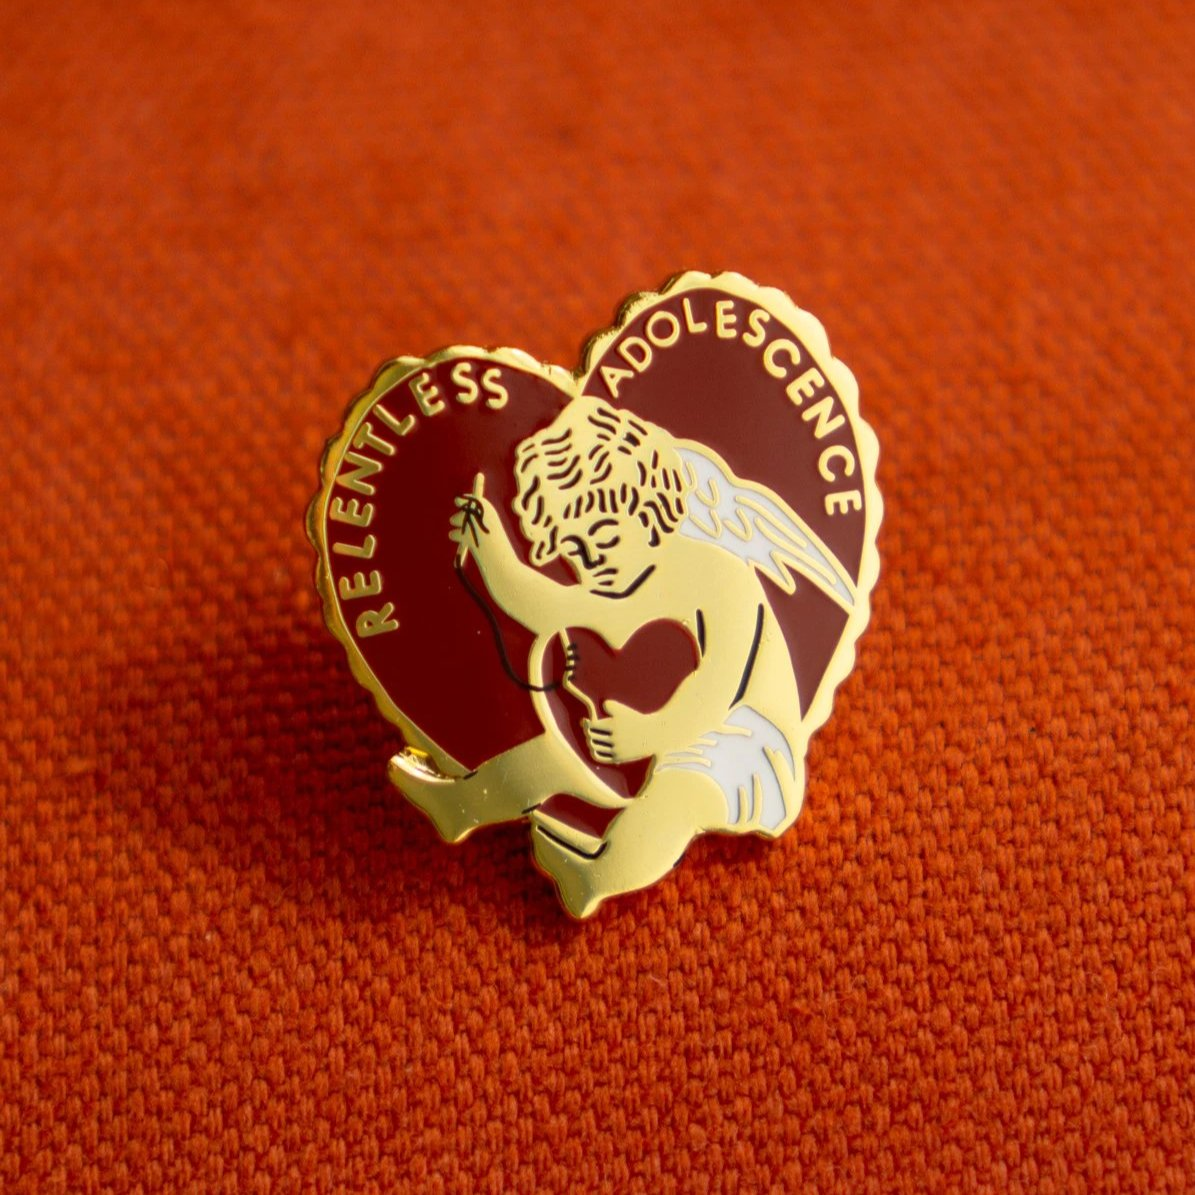 Stay Home Club: Relentless Adolescence Lapel Pin